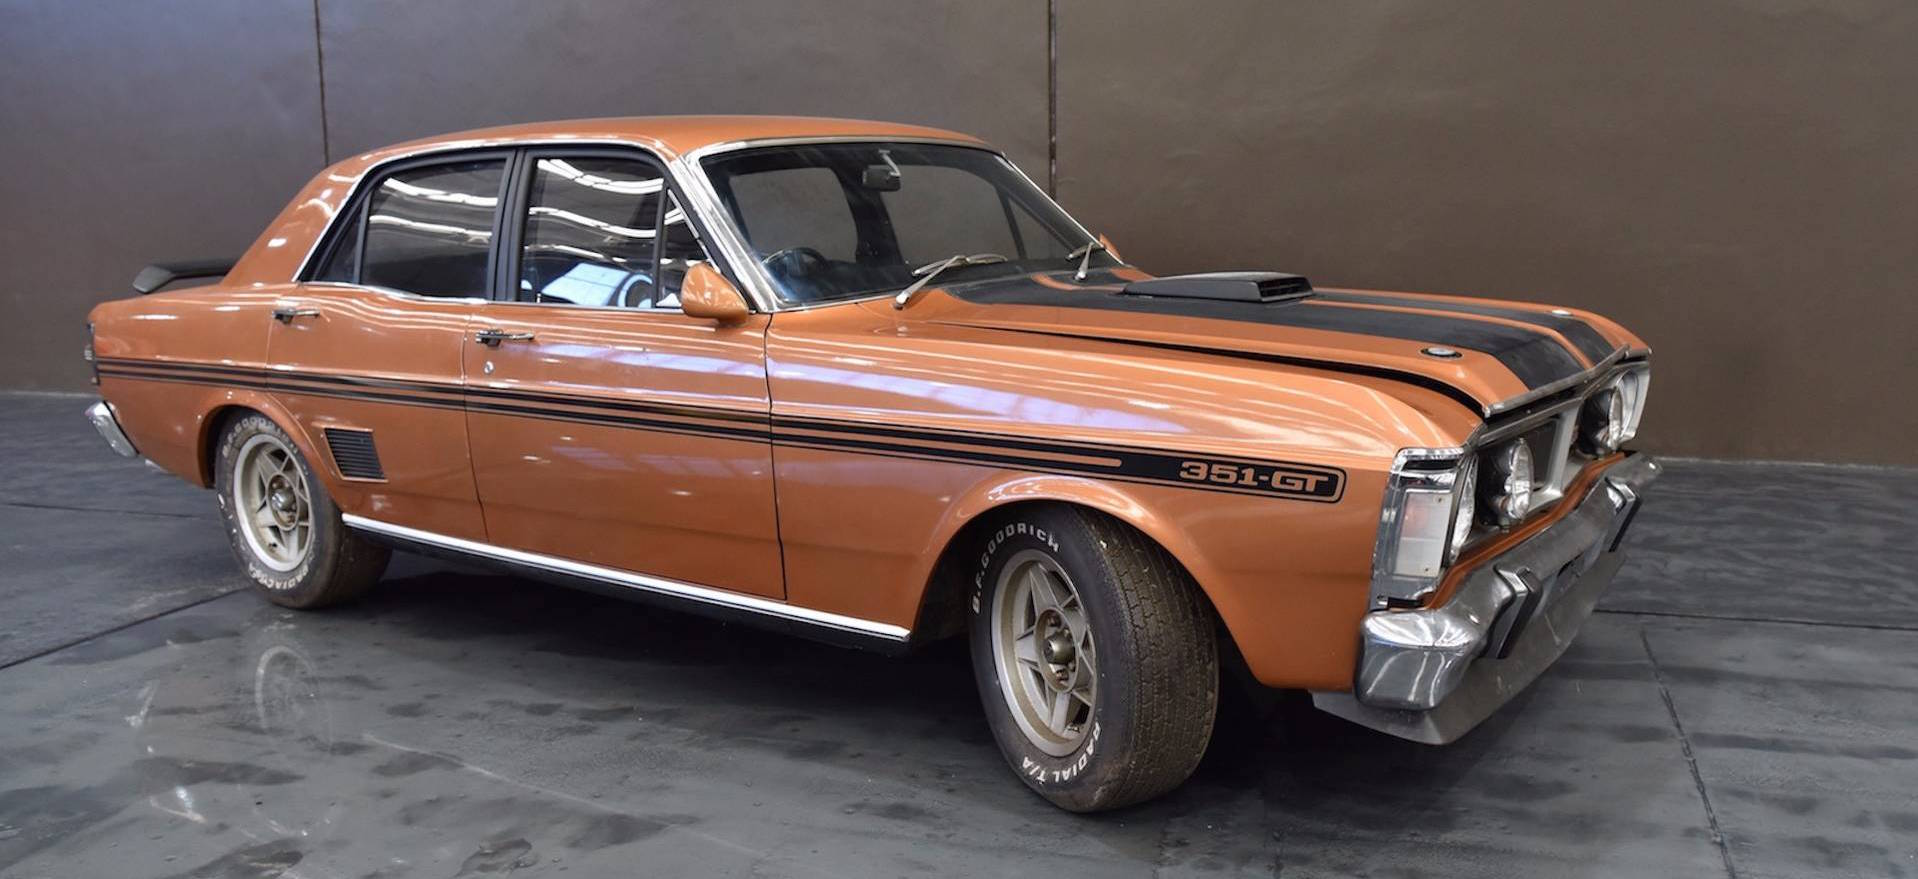 1971 Ford Falcon GTHO